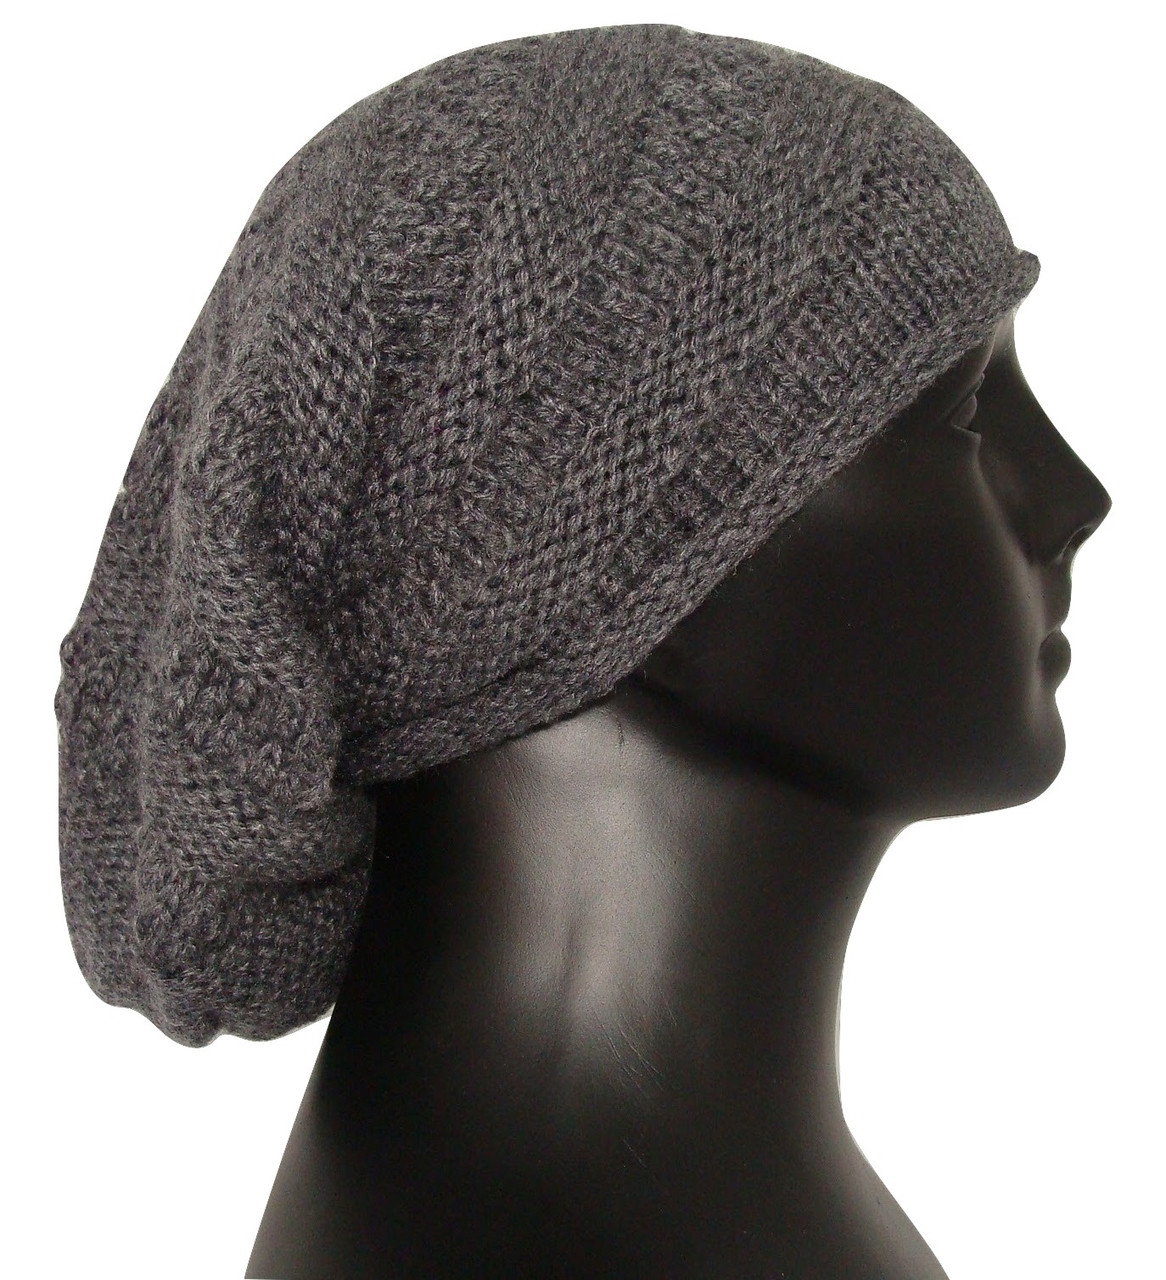 2081b0e538f ... Comfortable and warm winter hat for casual wear in 100% Alpaca ...